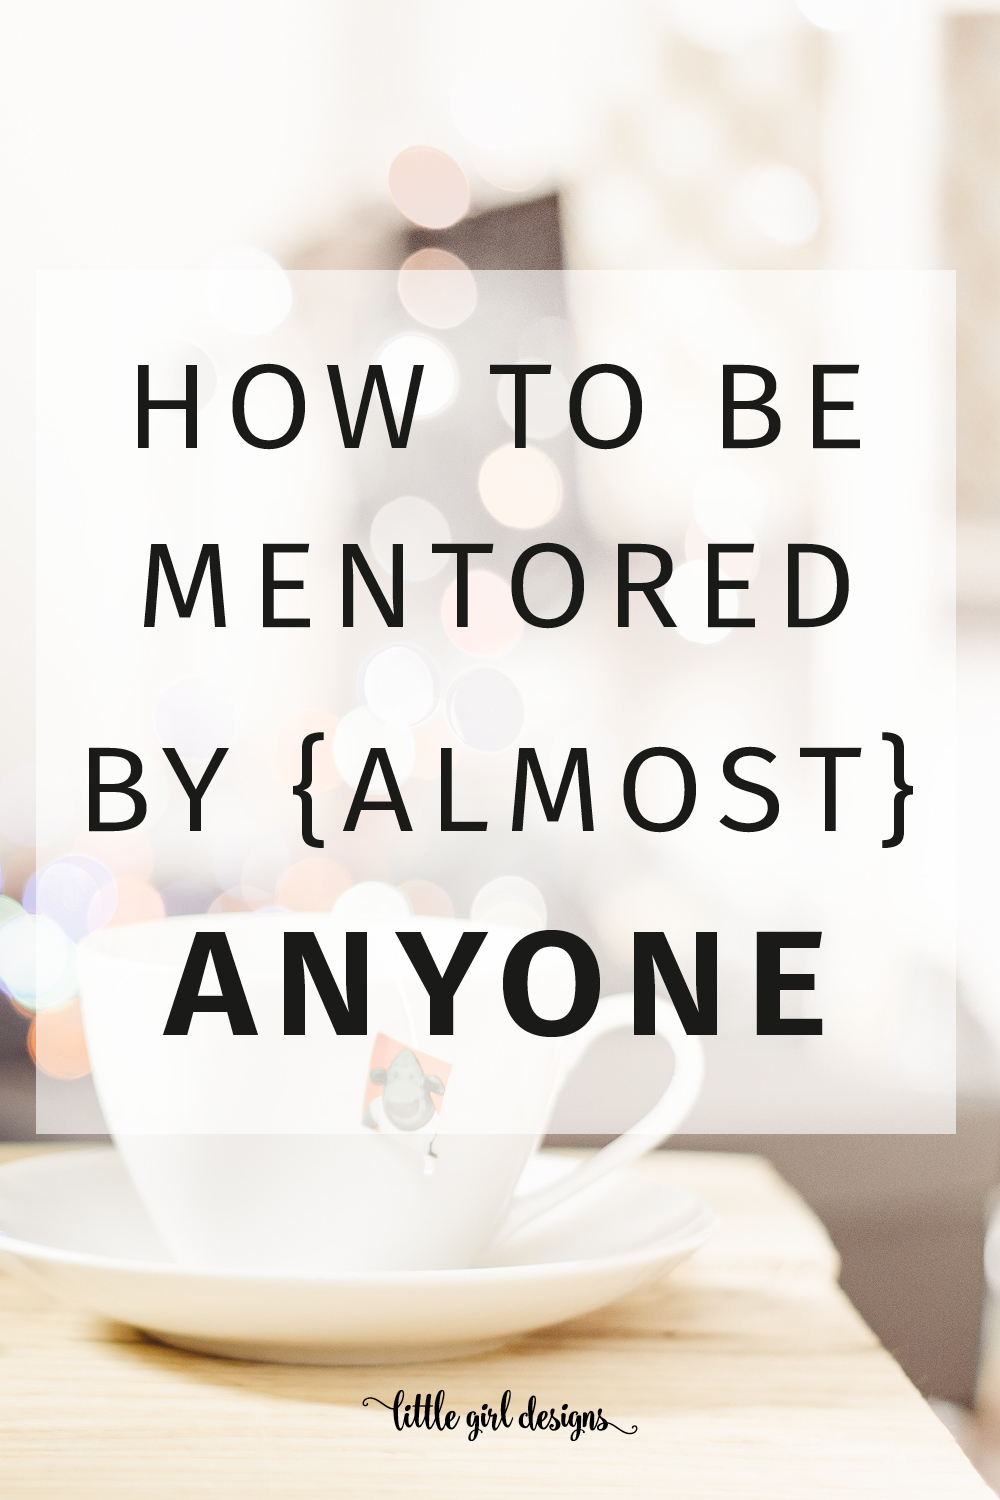 Mentoring is a great way to grow personally and professionally, but what if you don't know anyone who can mentor you? No worries, you can still be mentored by some of the top leaders in the world. Seriously. This is how I do it. :) (P.S. This is a really awesome idea for introverts!)